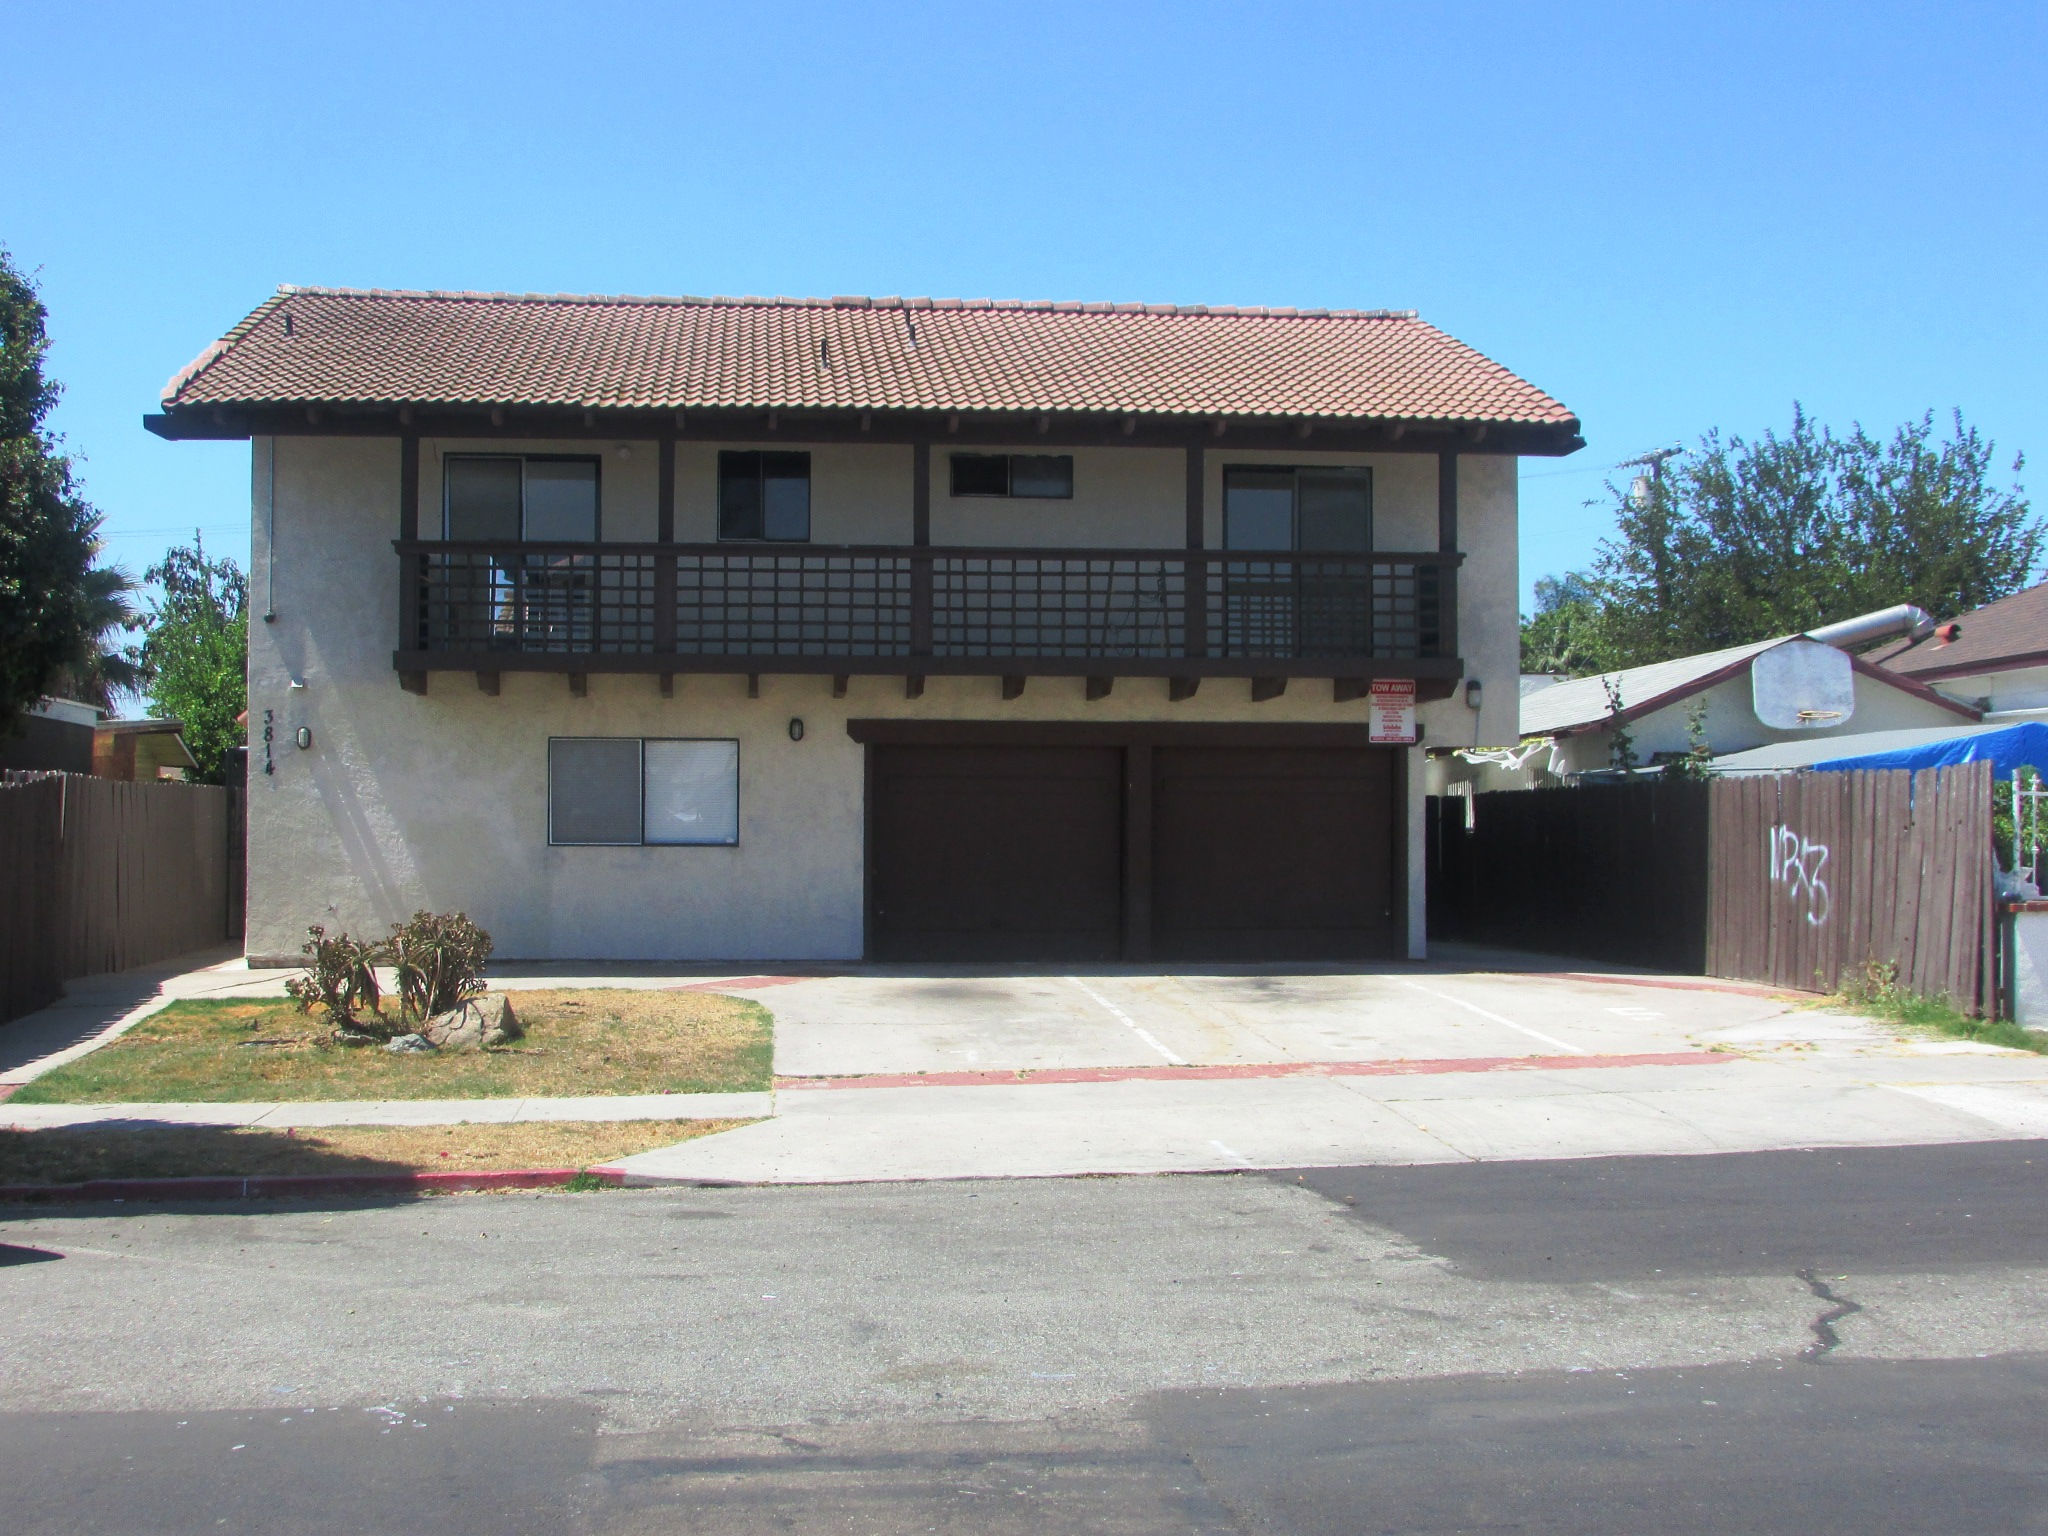 Photo of 3814 CHEROKEE AVE APT 4  San Diego  CA